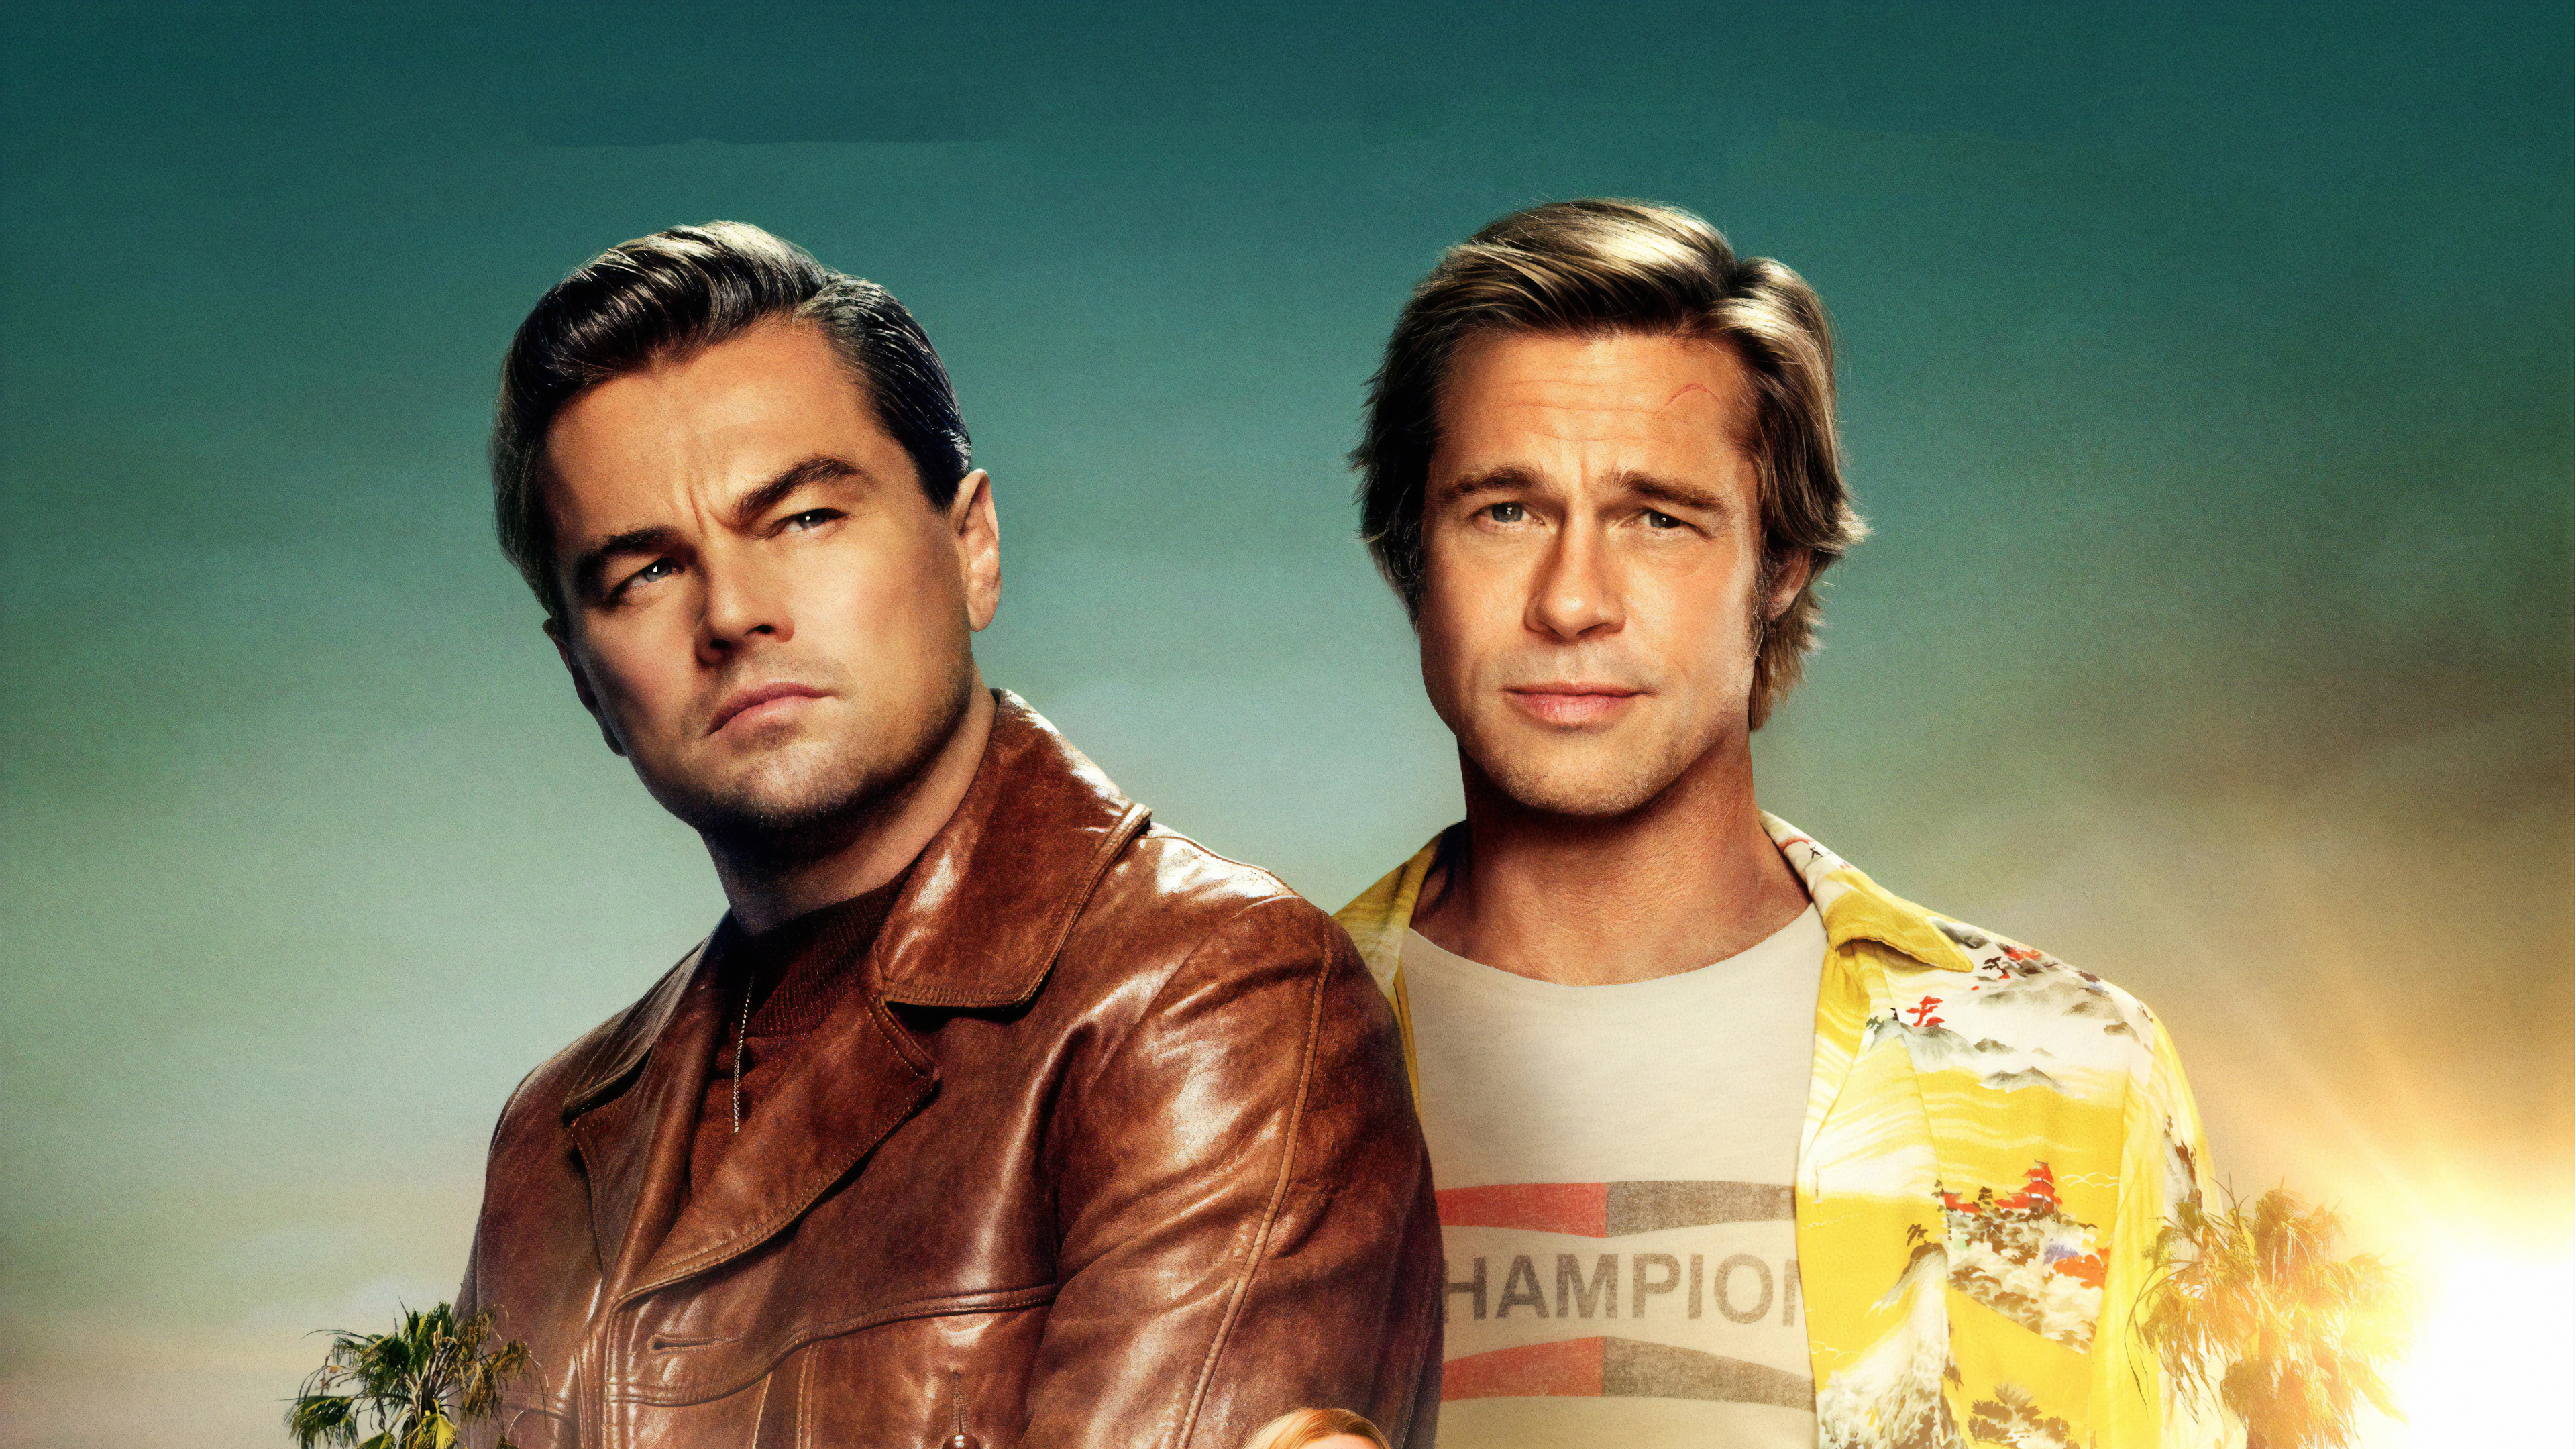 once upon a time in hollywood 2019 1565055681 - Once Upon A Time In Hollywood 2019 - once upon a time in hollywood wallpapers, movies wallpapers, leonardo dicaprio wallpapers, hd-wallpapers, brad pitt wallpapers, 4k-wallpapers, 2019 movies wallpapers